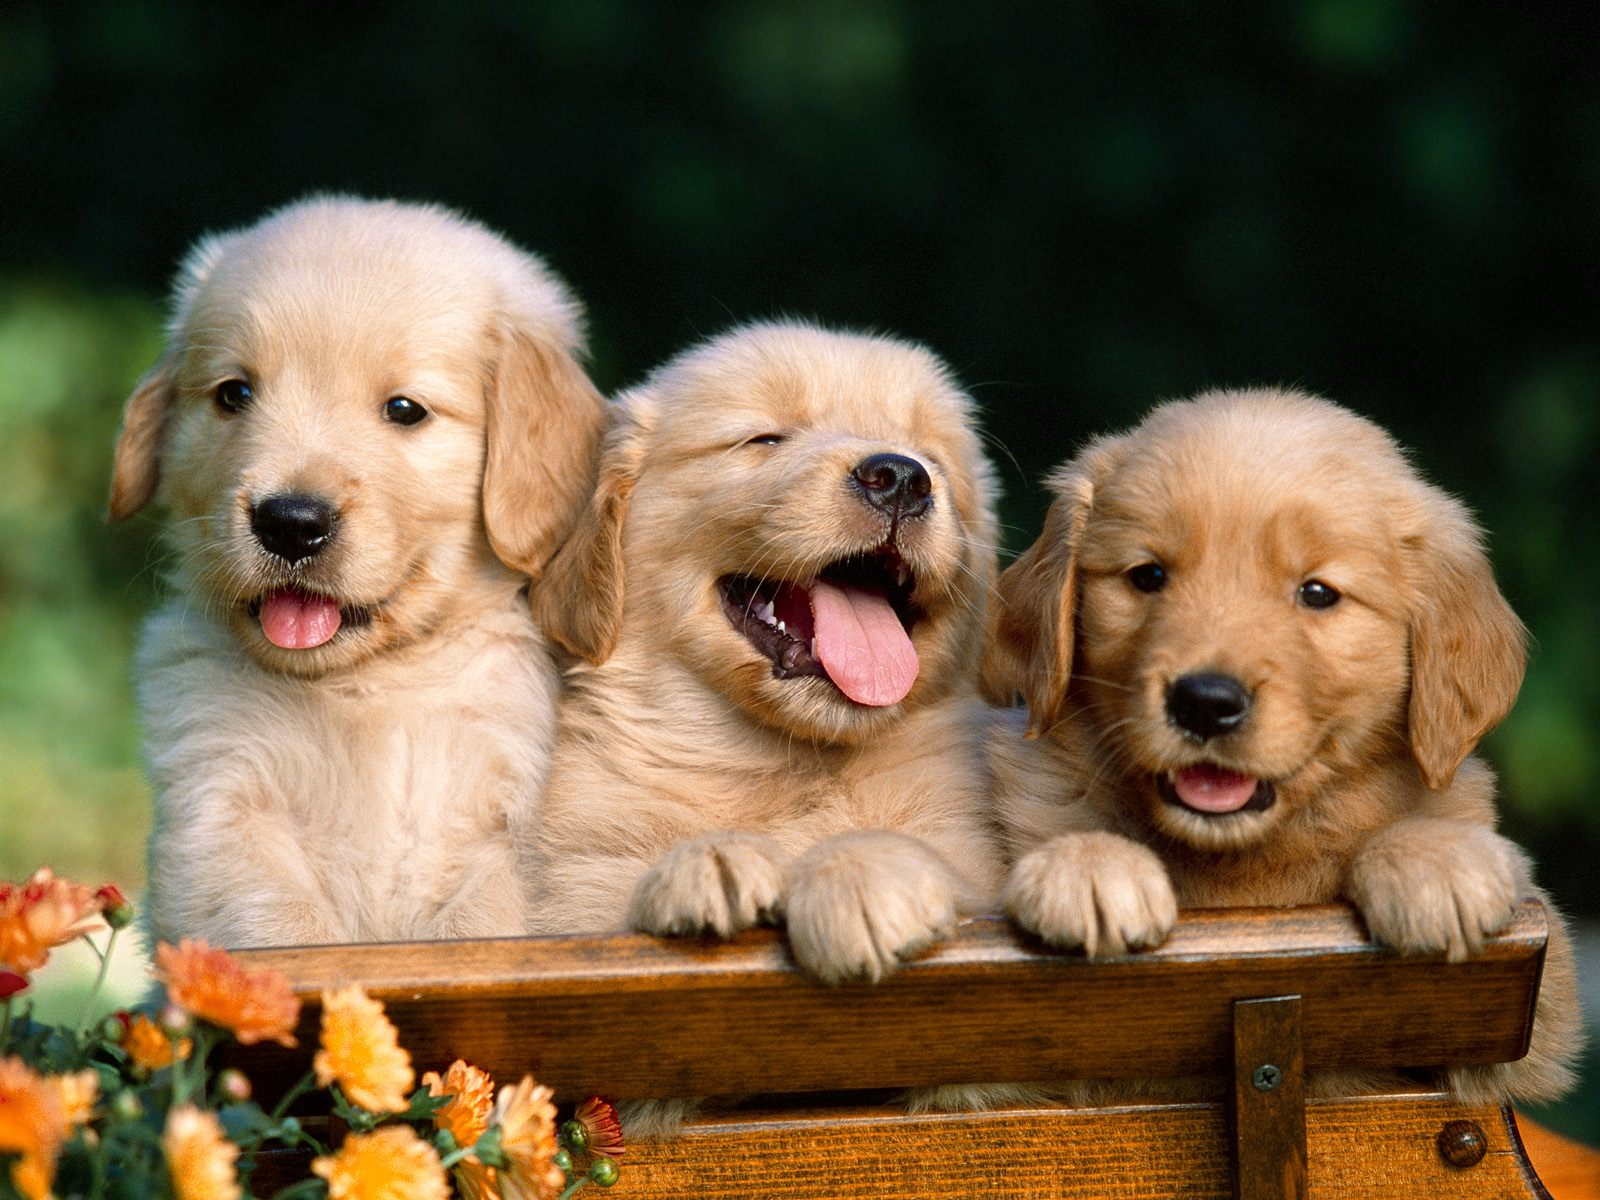 Picture of 3 cute golden retrievers